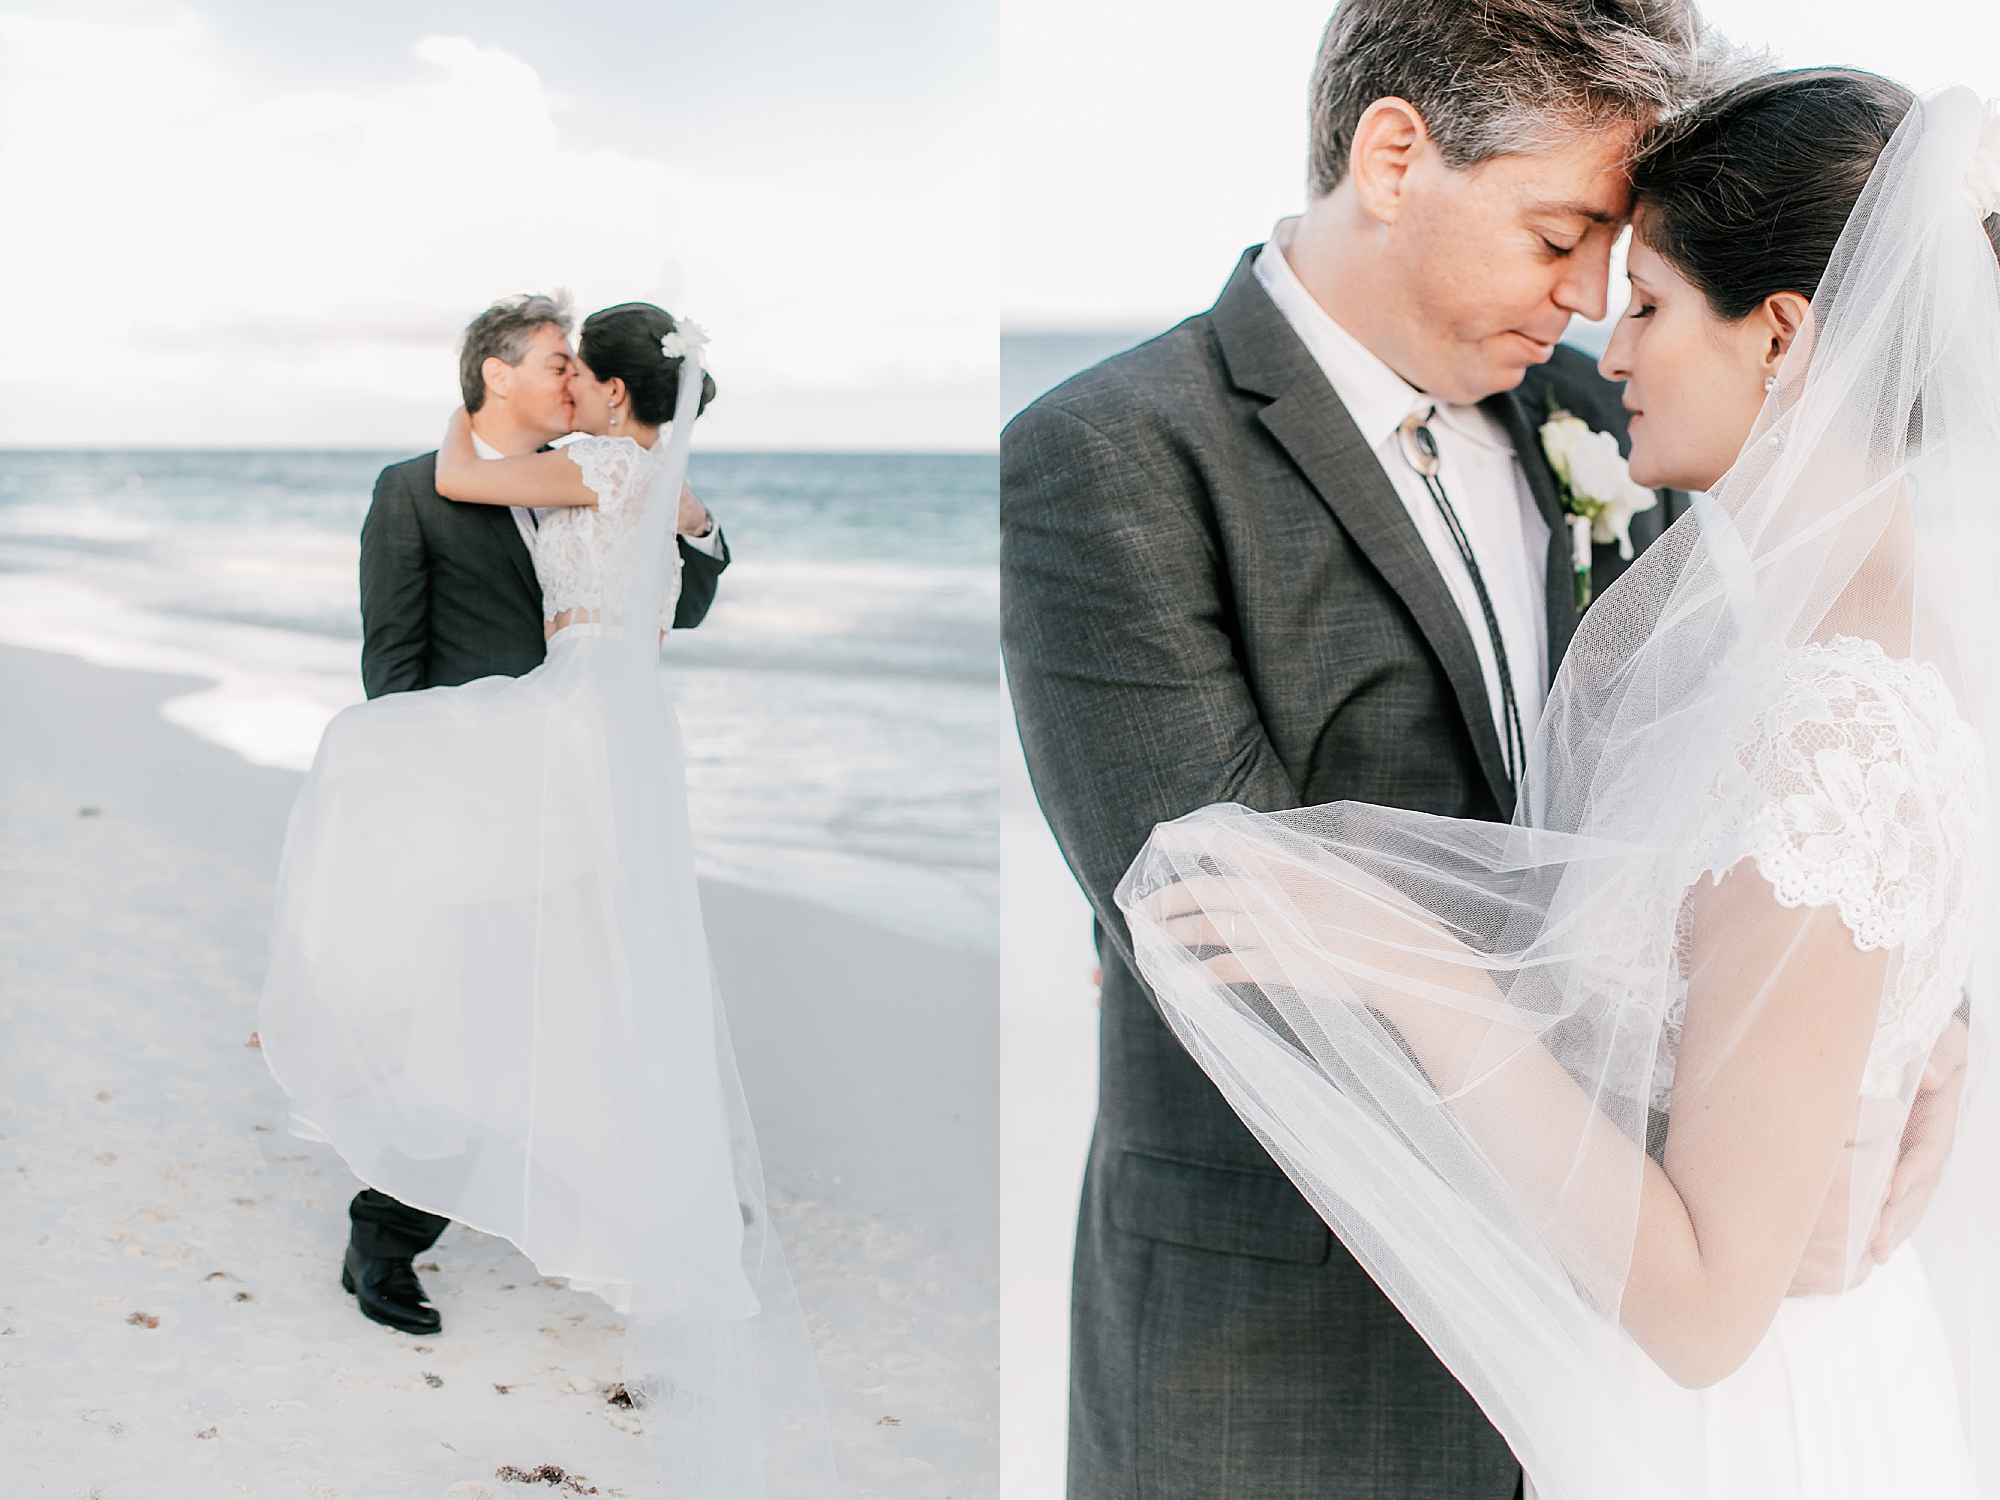 Stylish and Candid Destination Film Wedding Photography in Tulum Mexico by Magdalena Studios 0021